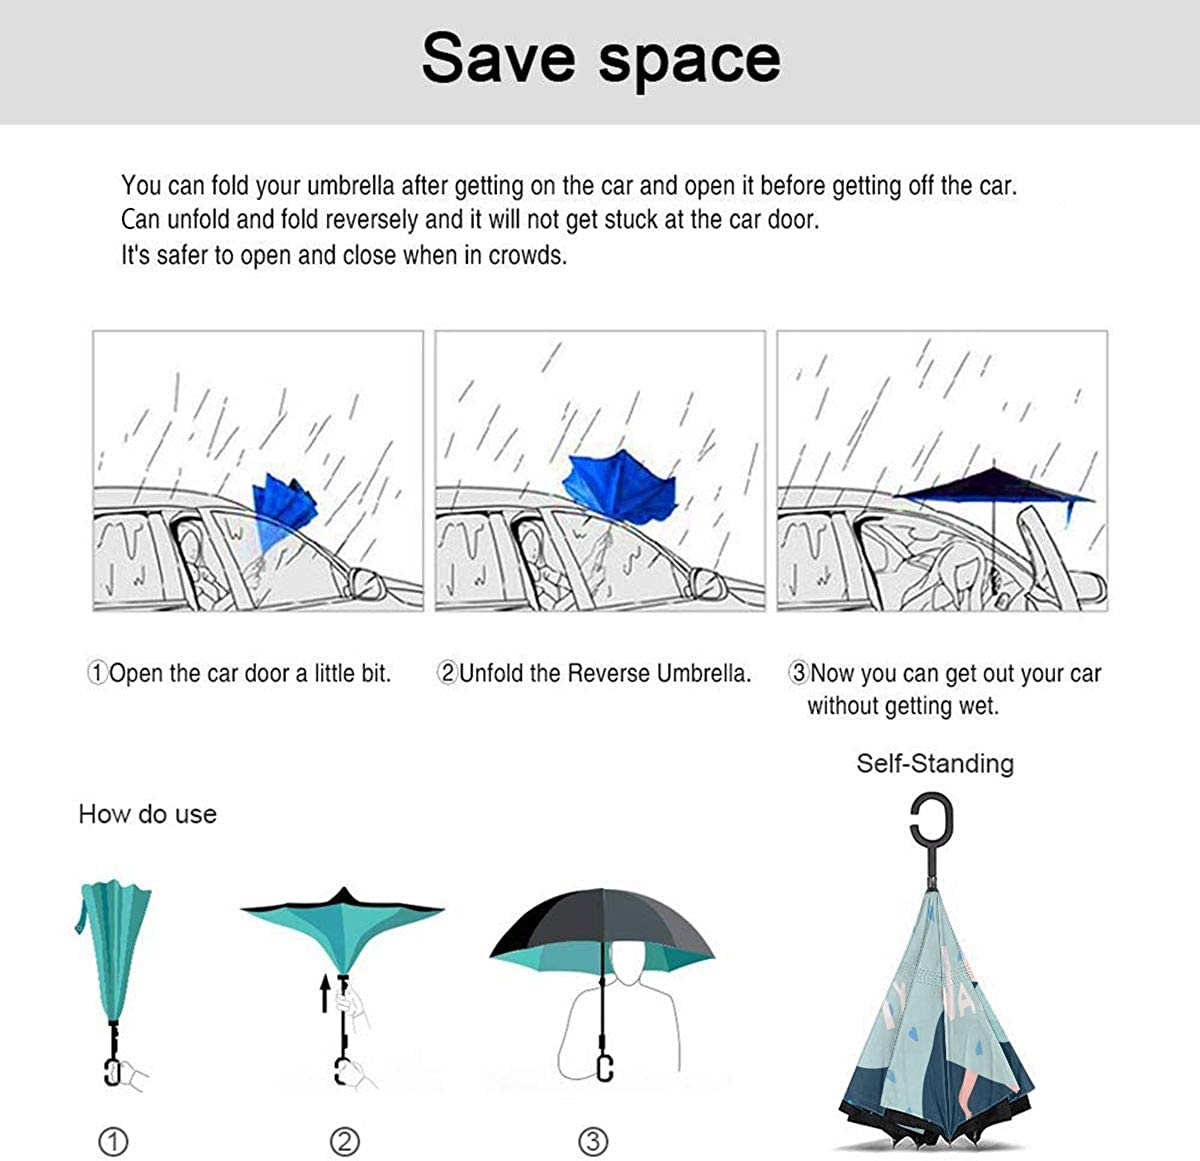 Tender Lovers In Bed Valentine Night Embrace Reverse Umbrella Double Layer Inverted Umbrellas For Car Rain Outdoor With C-Shaped Handle Personalized